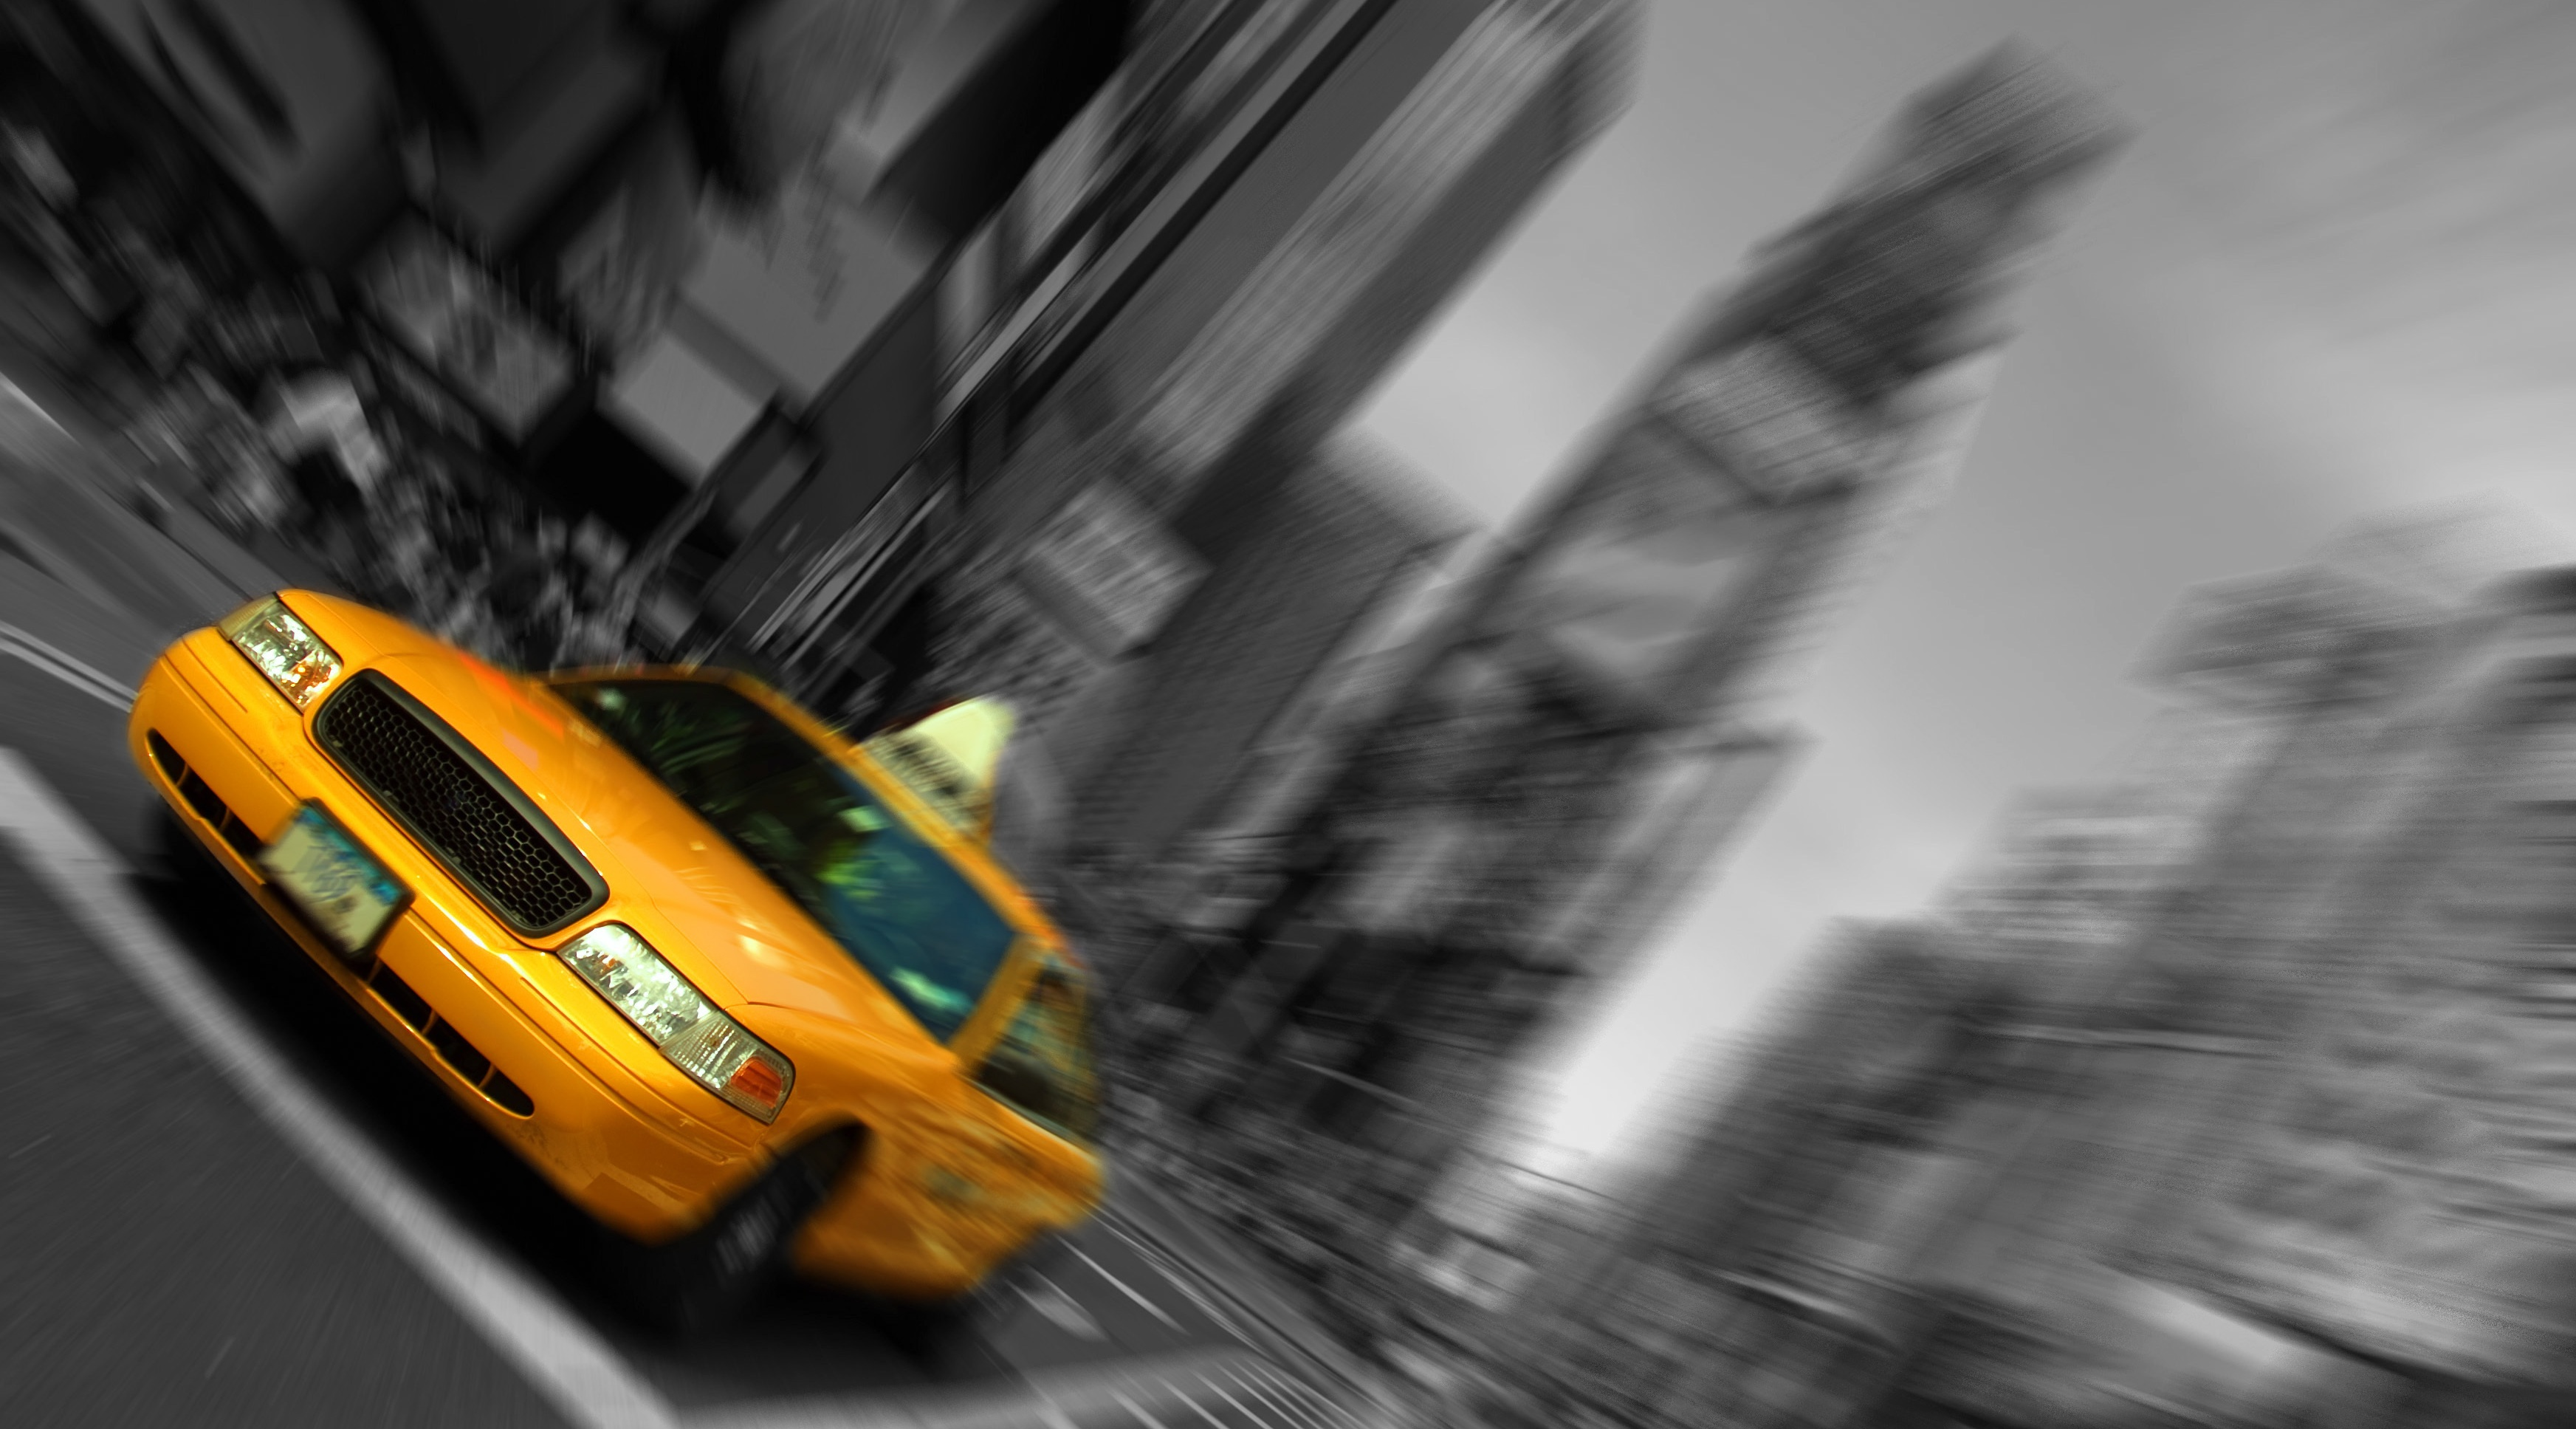 11 Taxi HD Wallpapers Background Images 3489x1935